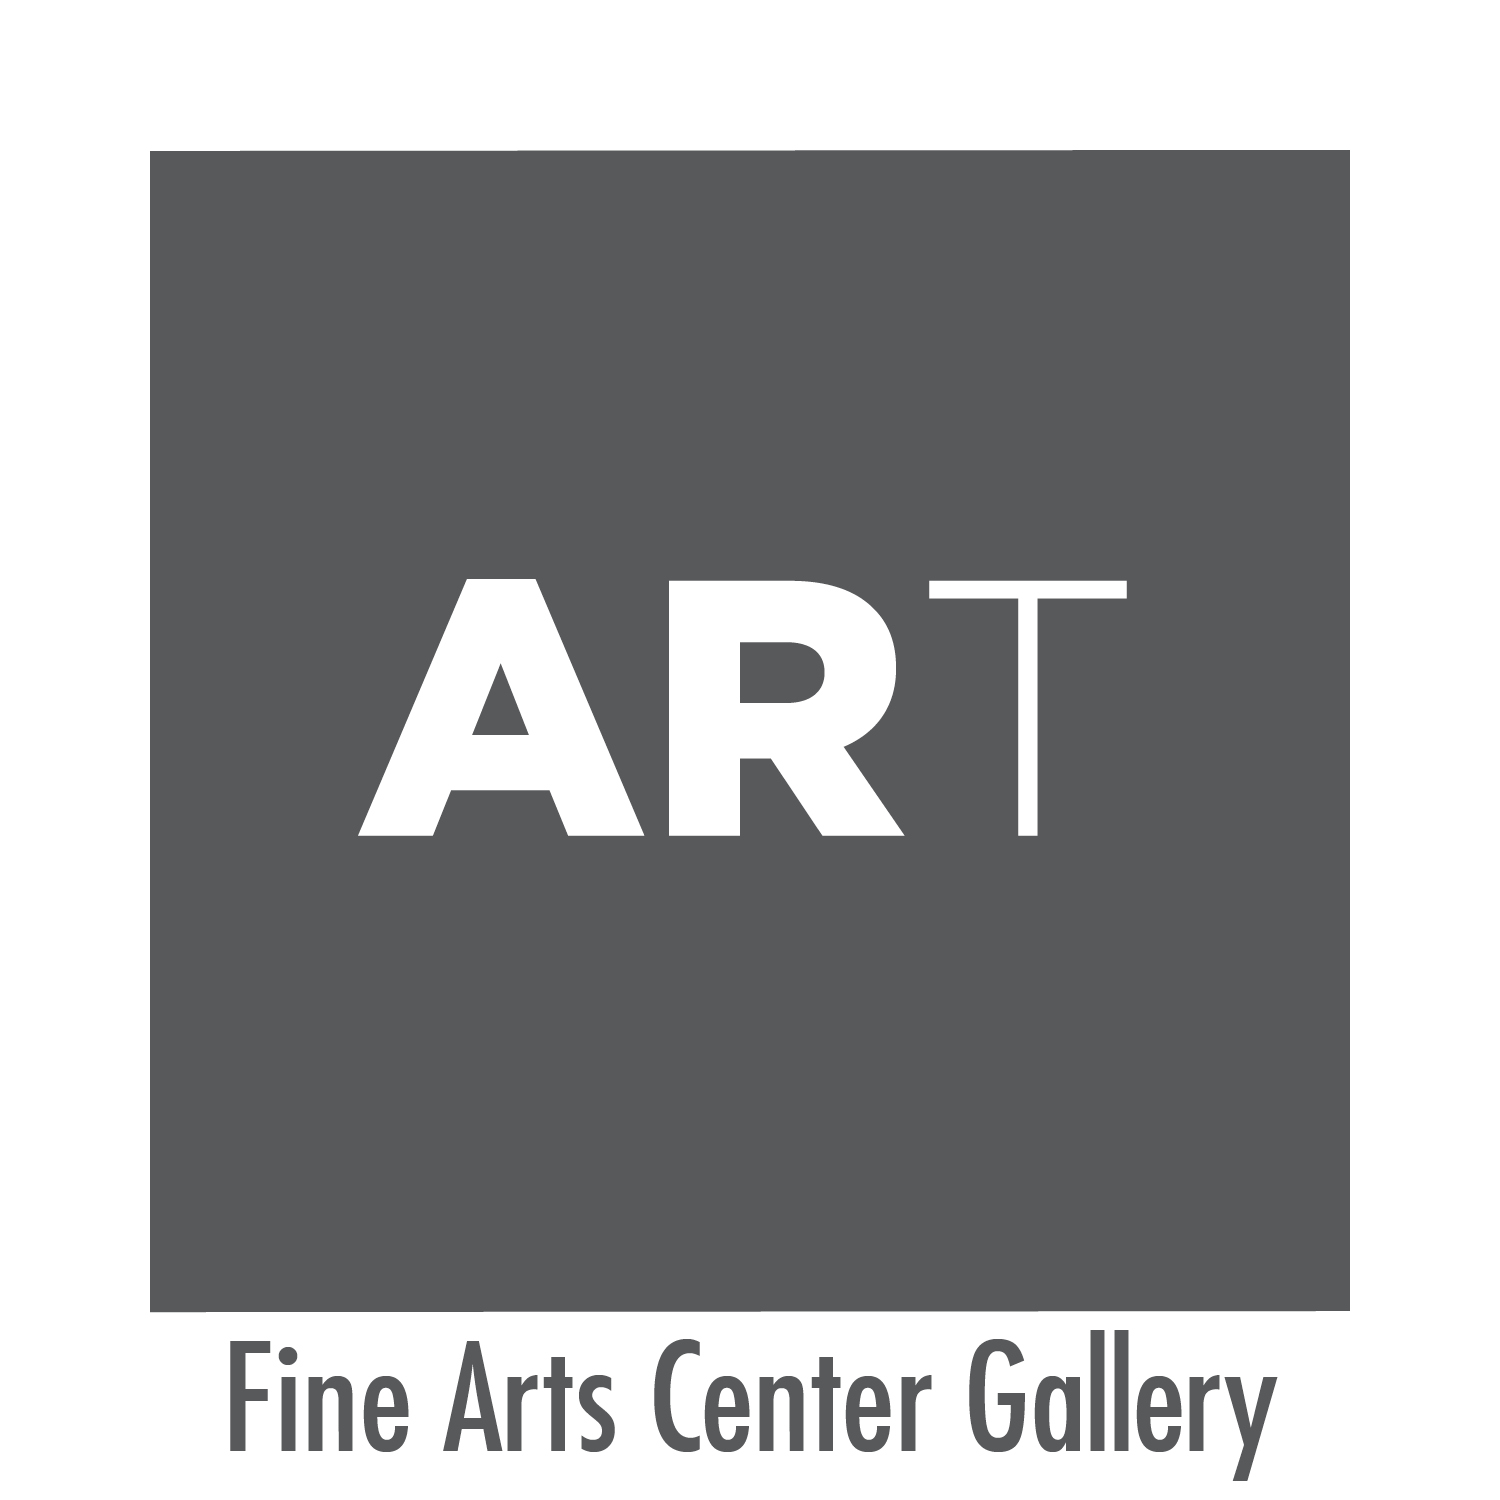 Fine Arts Center Gallery